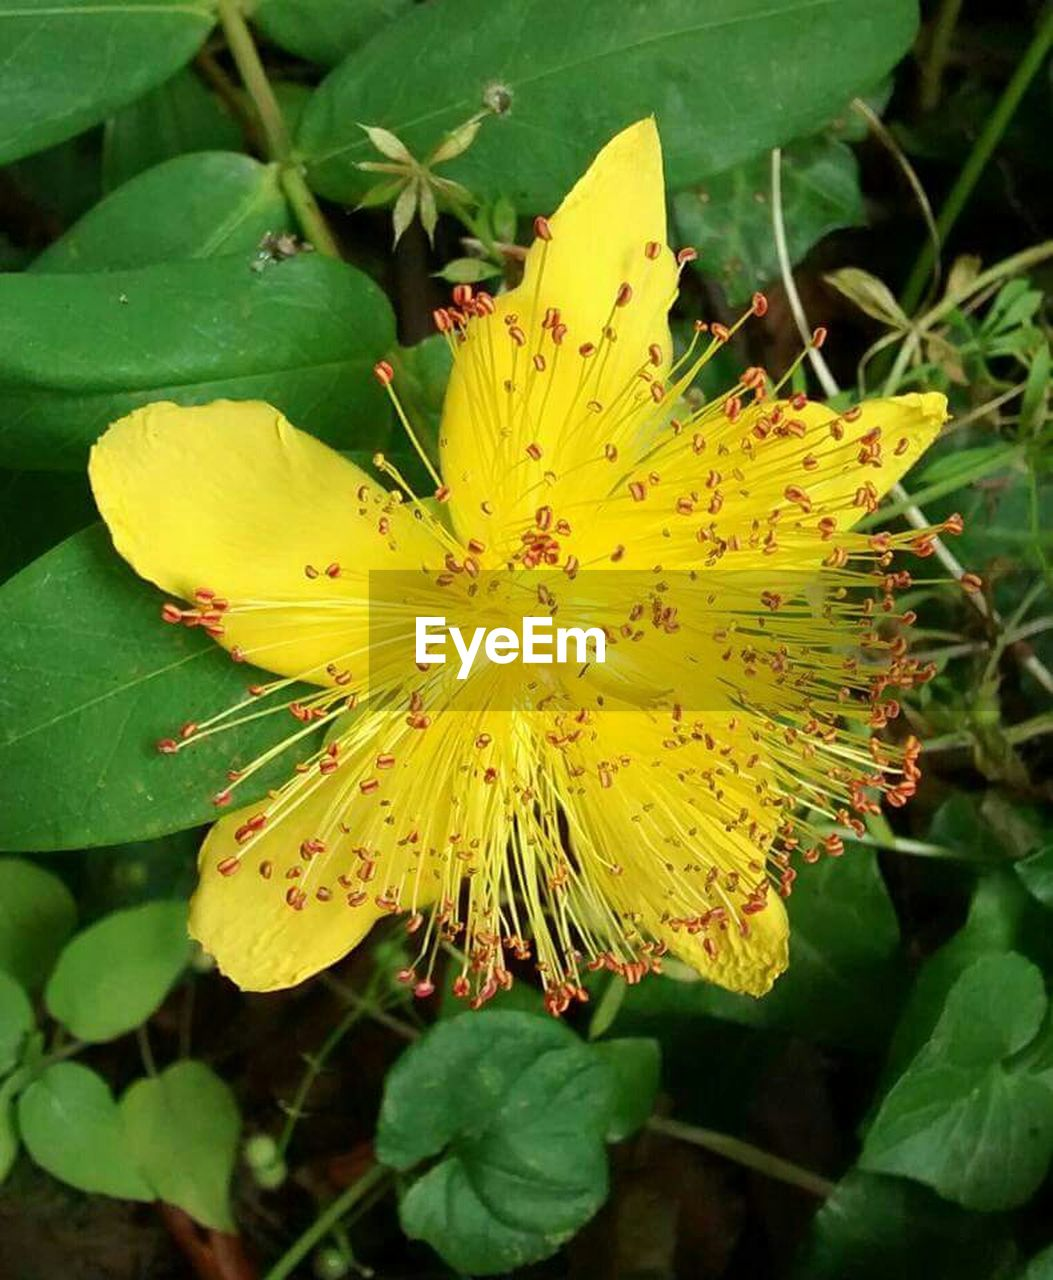 growth, leaf, nature, flower, plant, beauty in nature, petal, green color, fragility, freshness, flower head, outdoors, day, close-up, yellow, no people, blooming, animal themes